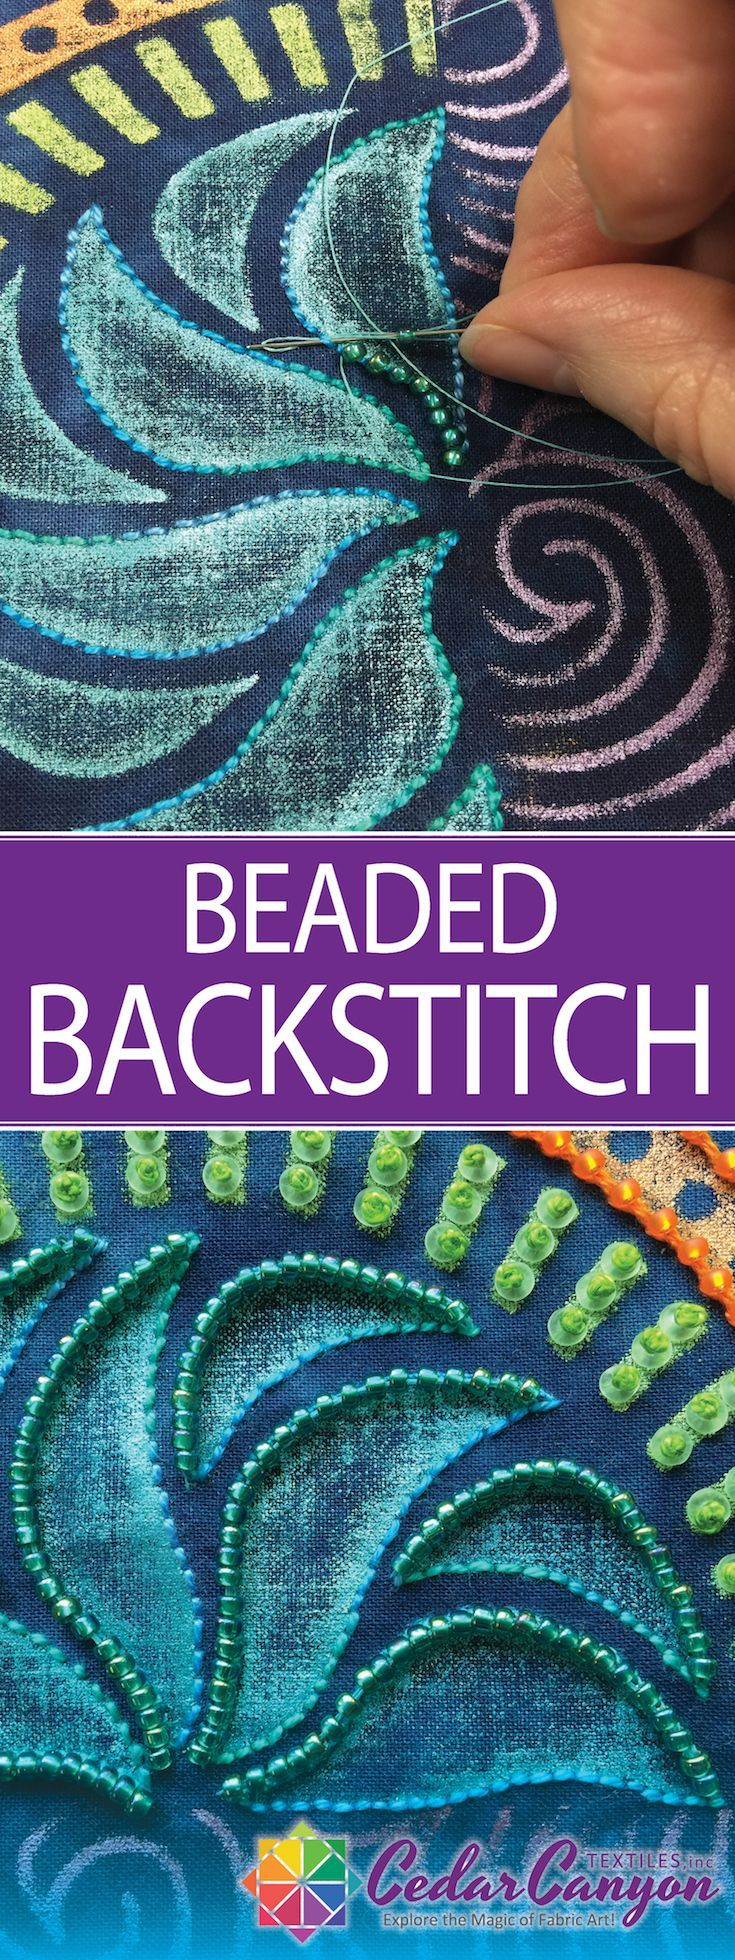 Add Texture And Sparkle With Beaded Backstitch - Cedar Canyon Textiles